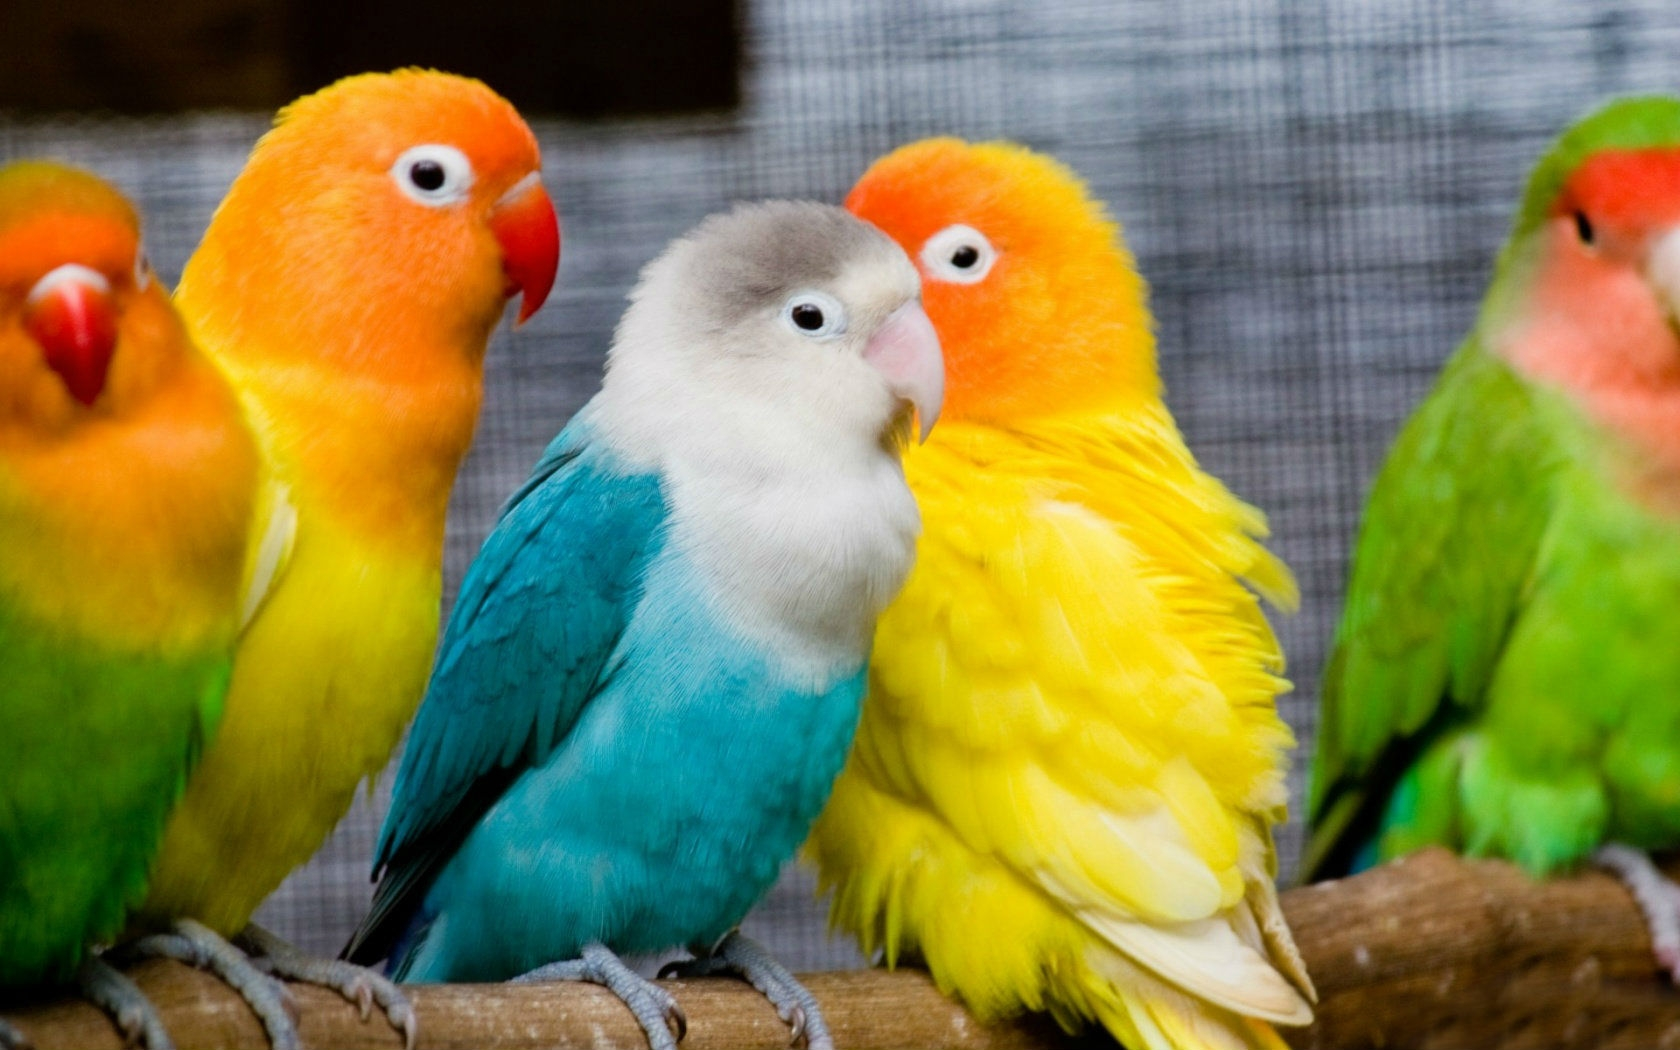 and-names-of-love-birds-HD-Download-Download-and-names-of-love-birds-HD-Dow-wallpaper-wp38011686